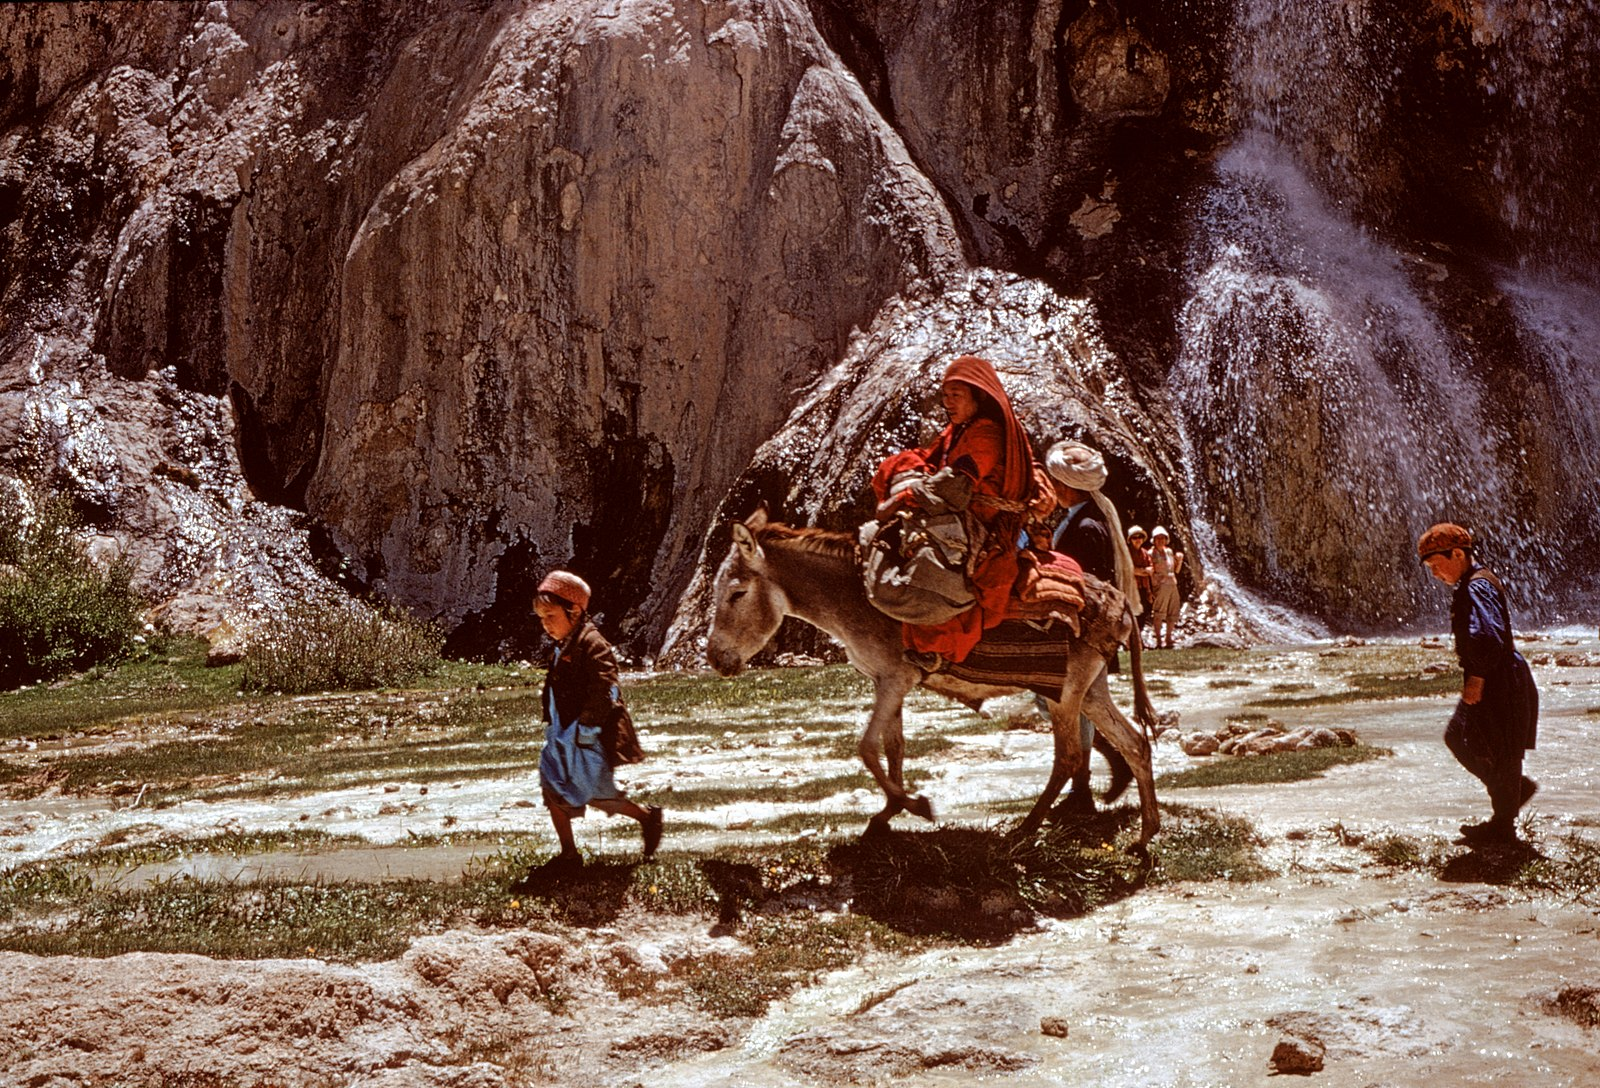 Hazara family, woman and children on donkey back, Band-i-Amir, photo by Françoise Foliot, 1974-1975, Creative Commons Attribution-Share Alike 4.0 International license